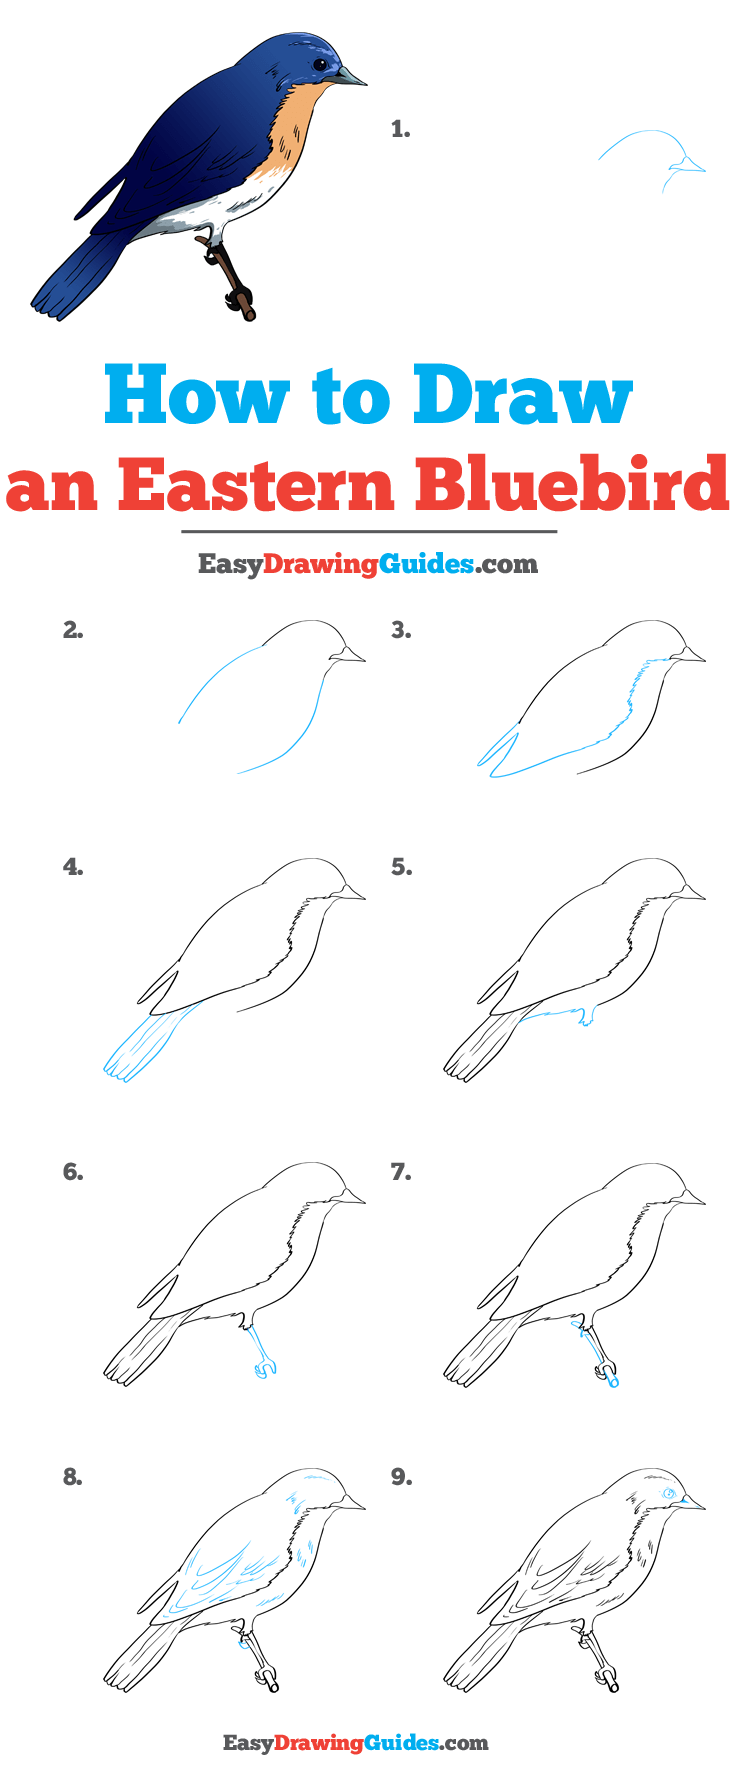 How to Draw Eastern Bluebird